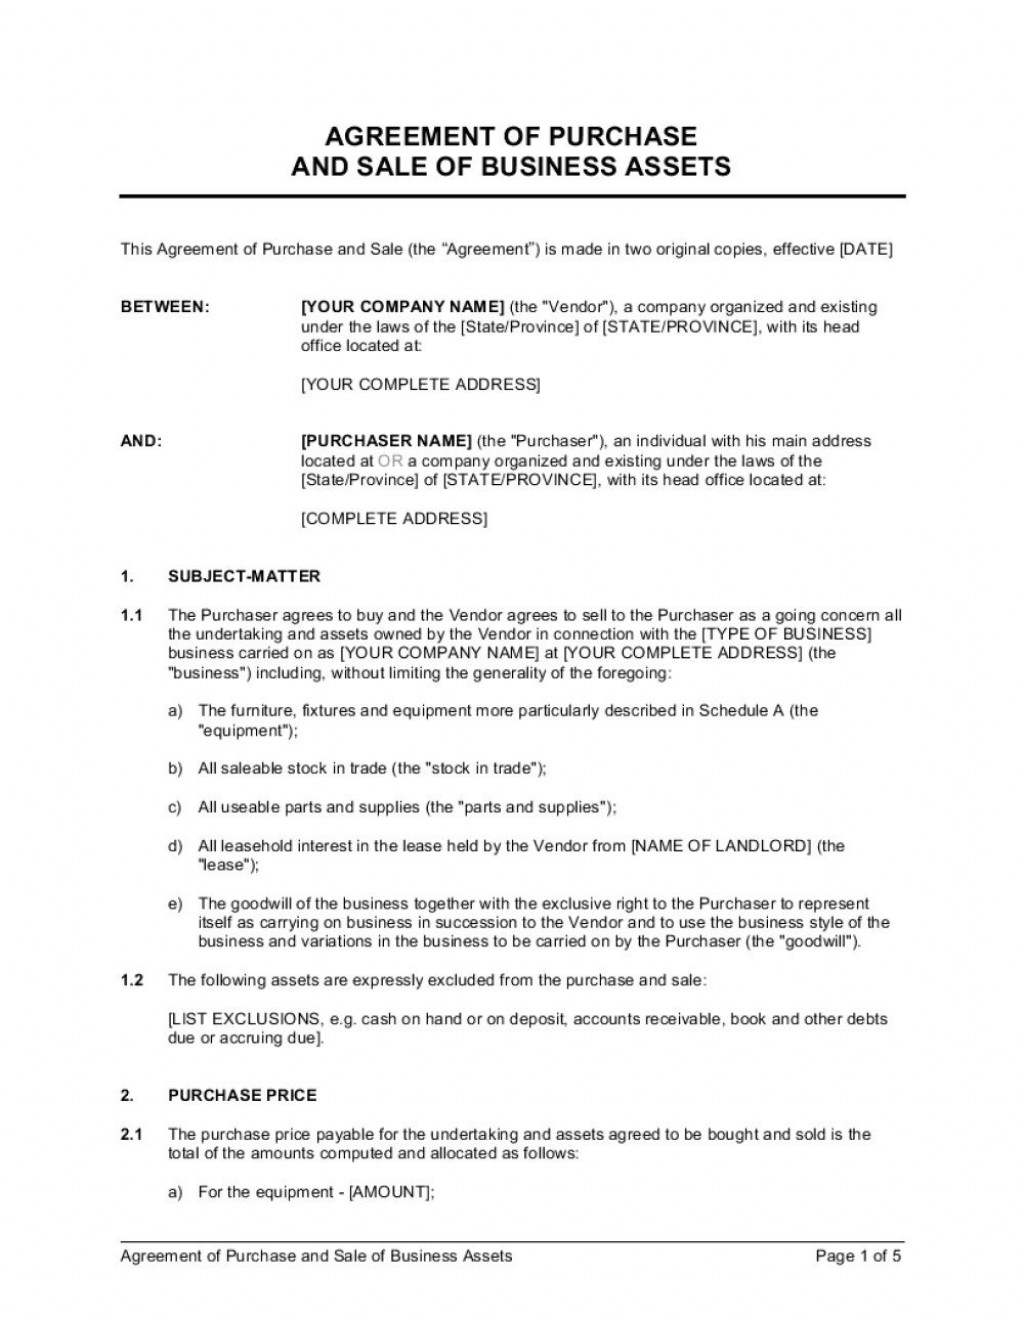 001 Fearsome Busines Purchase Agreement Template Design  Free Uk Sale And Nz Buying ContractLarge